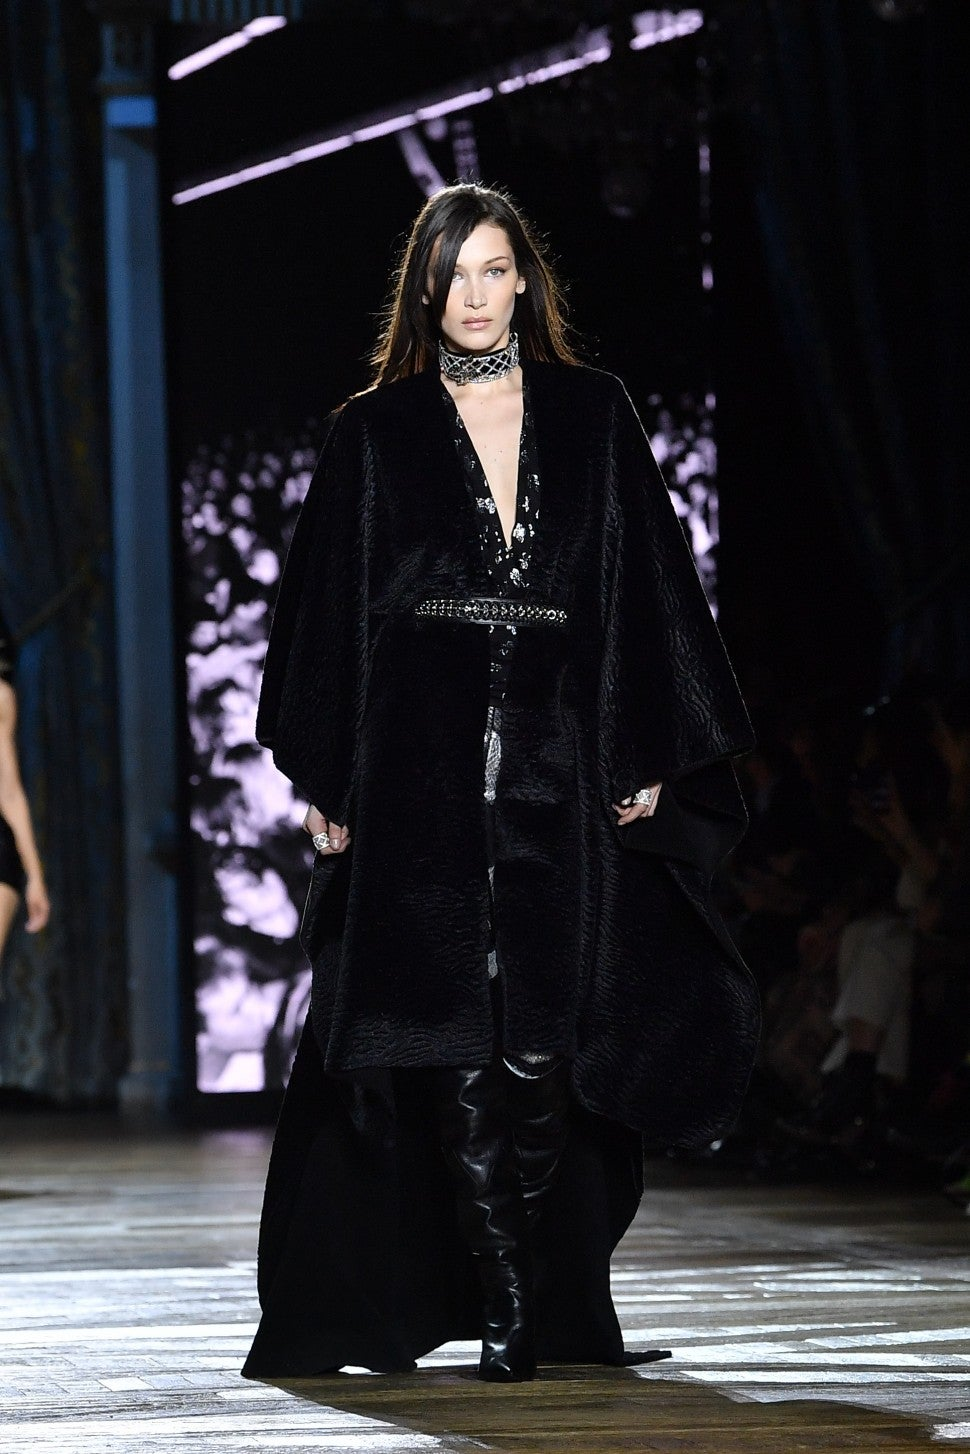 Bella Hadid Redemption fall 2019 cape trend